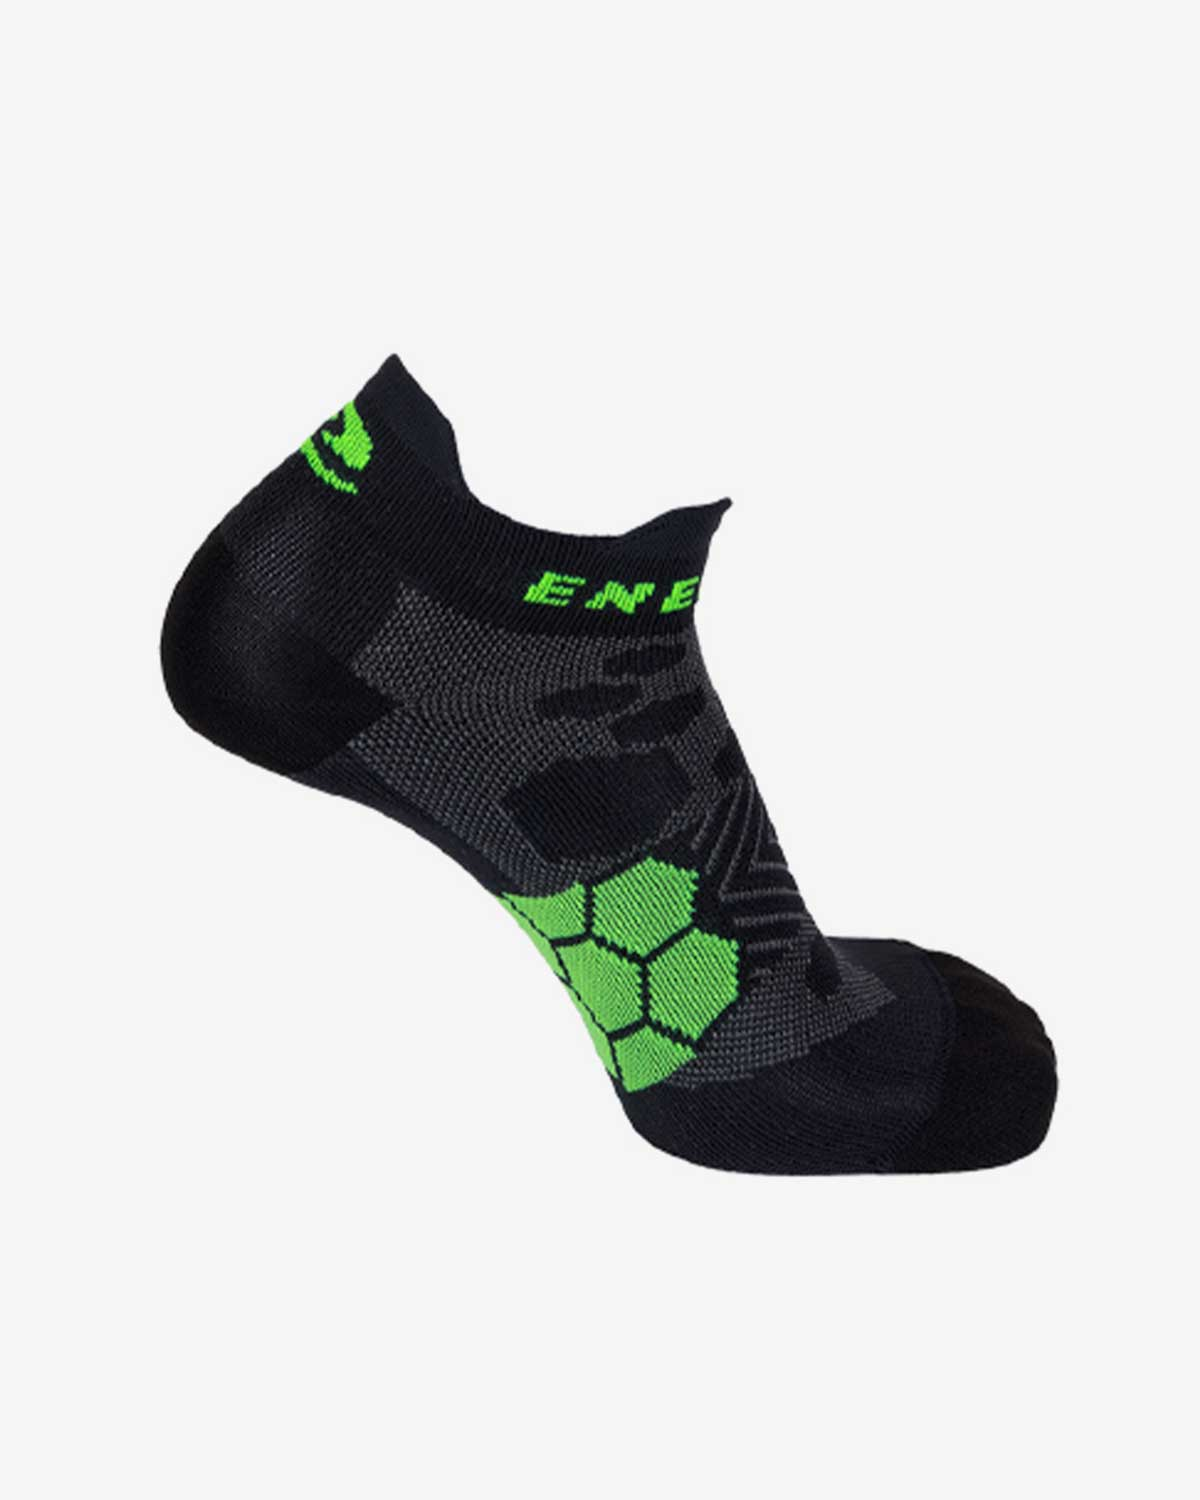 Enertor Specialist Black and Green Running Socks - Left.jpg